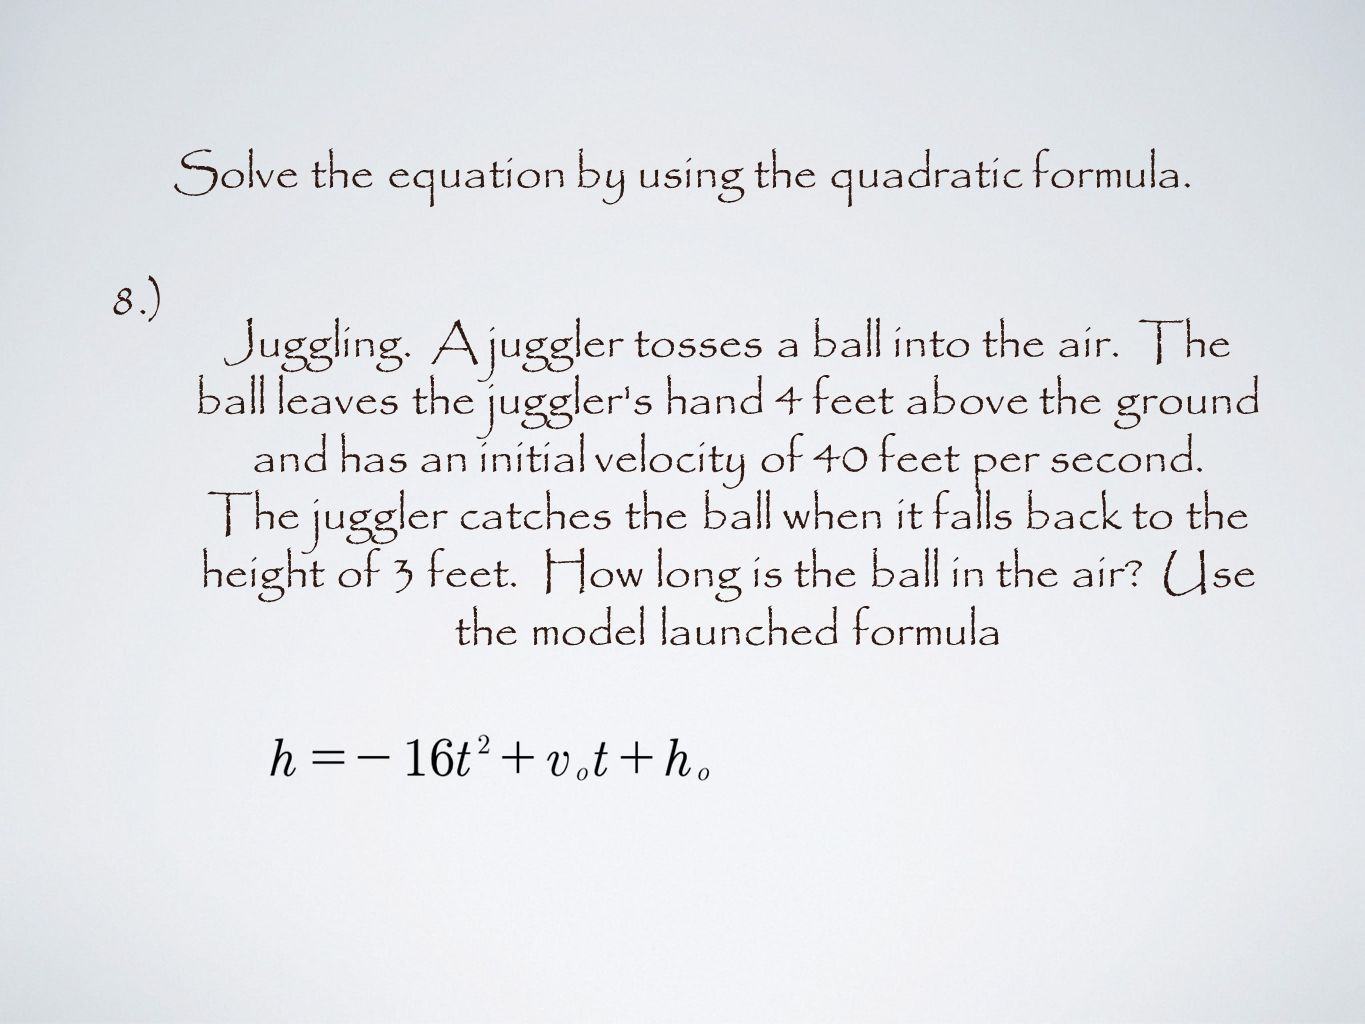 Solve the equation by using the quadratic formula.